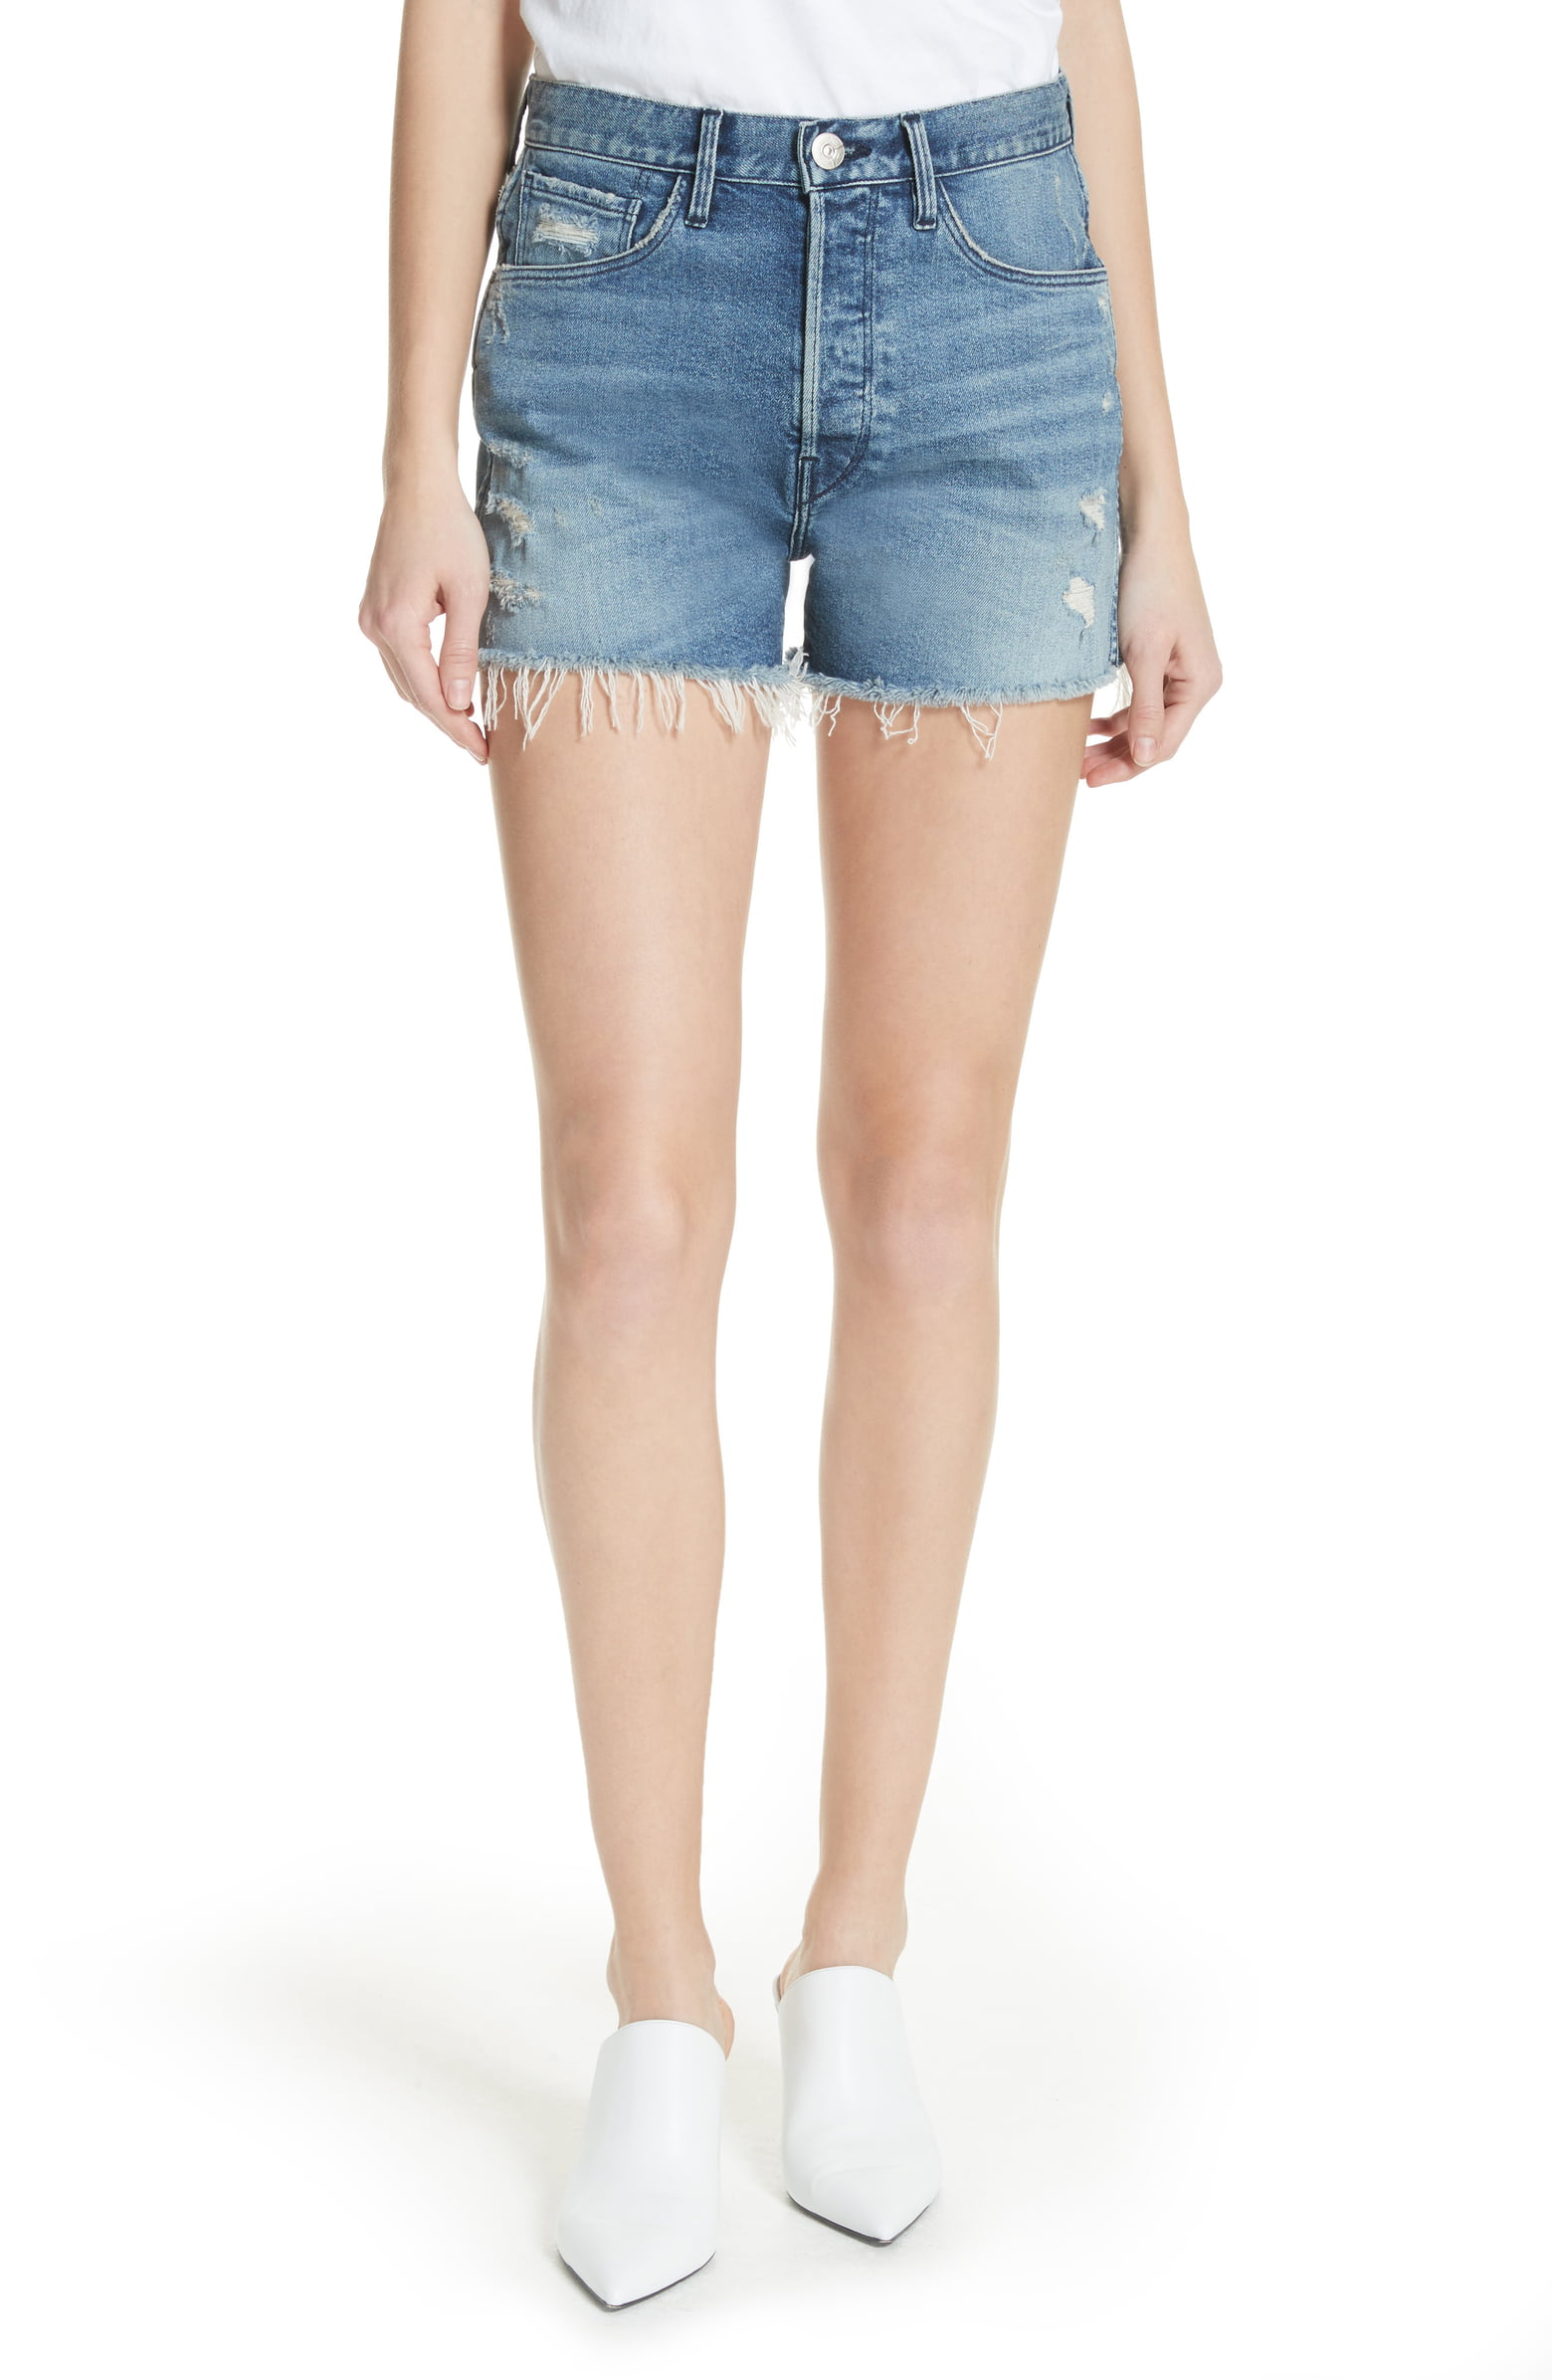 3X1 Blake Shorts - Wispy threads flutter from the roughed-up hems of this vintage-inspired cutoffs woven with a touch of stretch for modern comfort. Click image to shop this style!